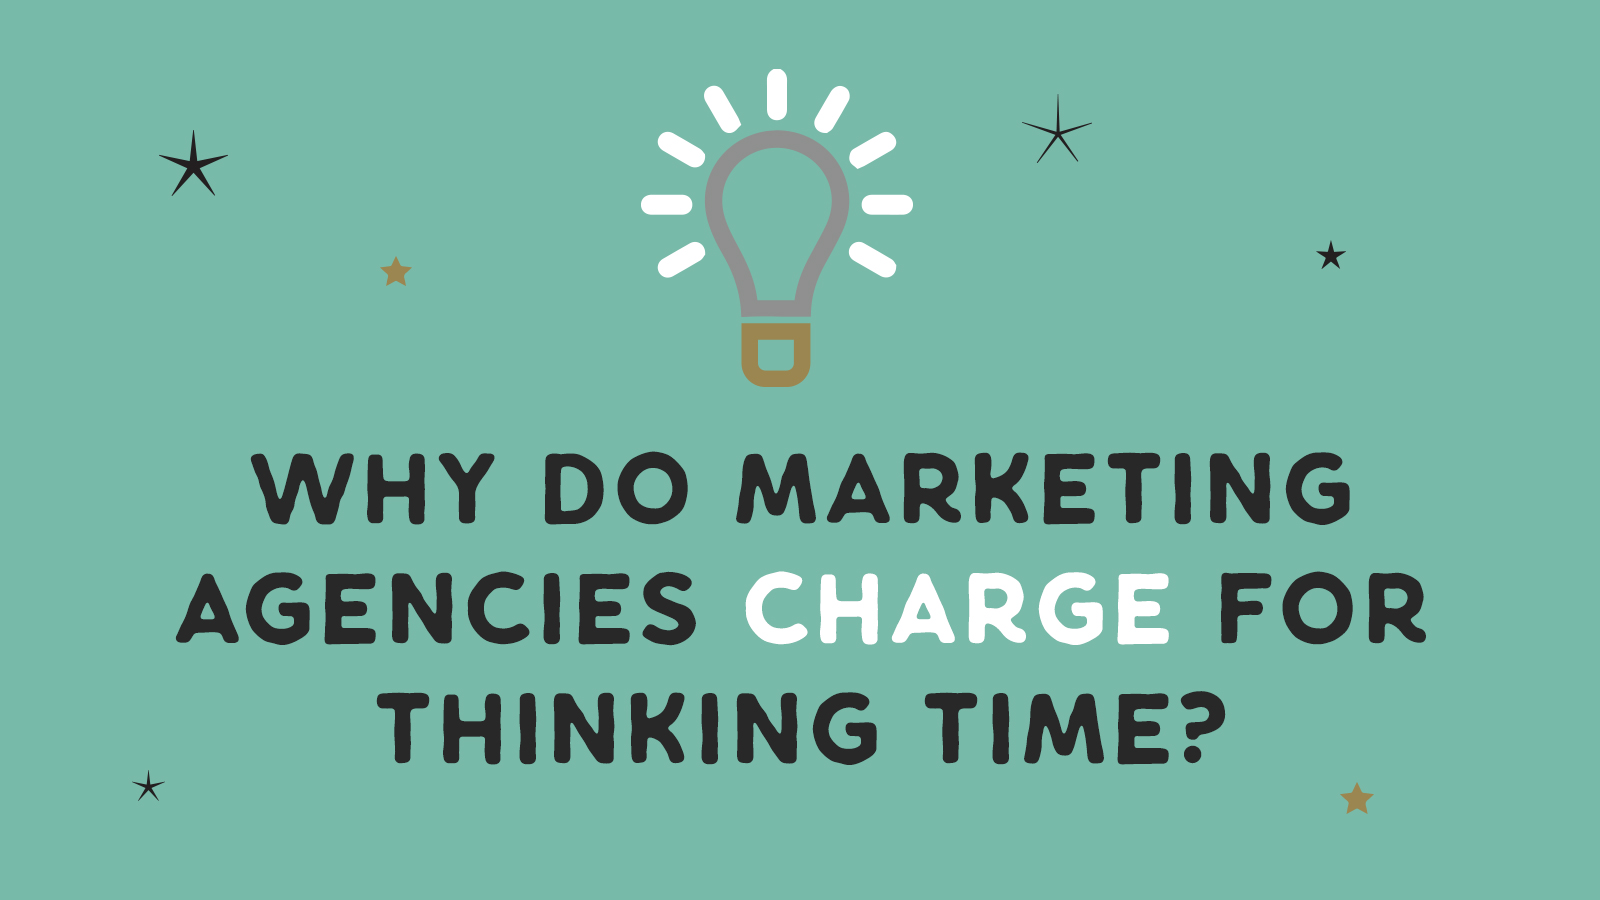 Why do Marketing agencies charge for thinking time?